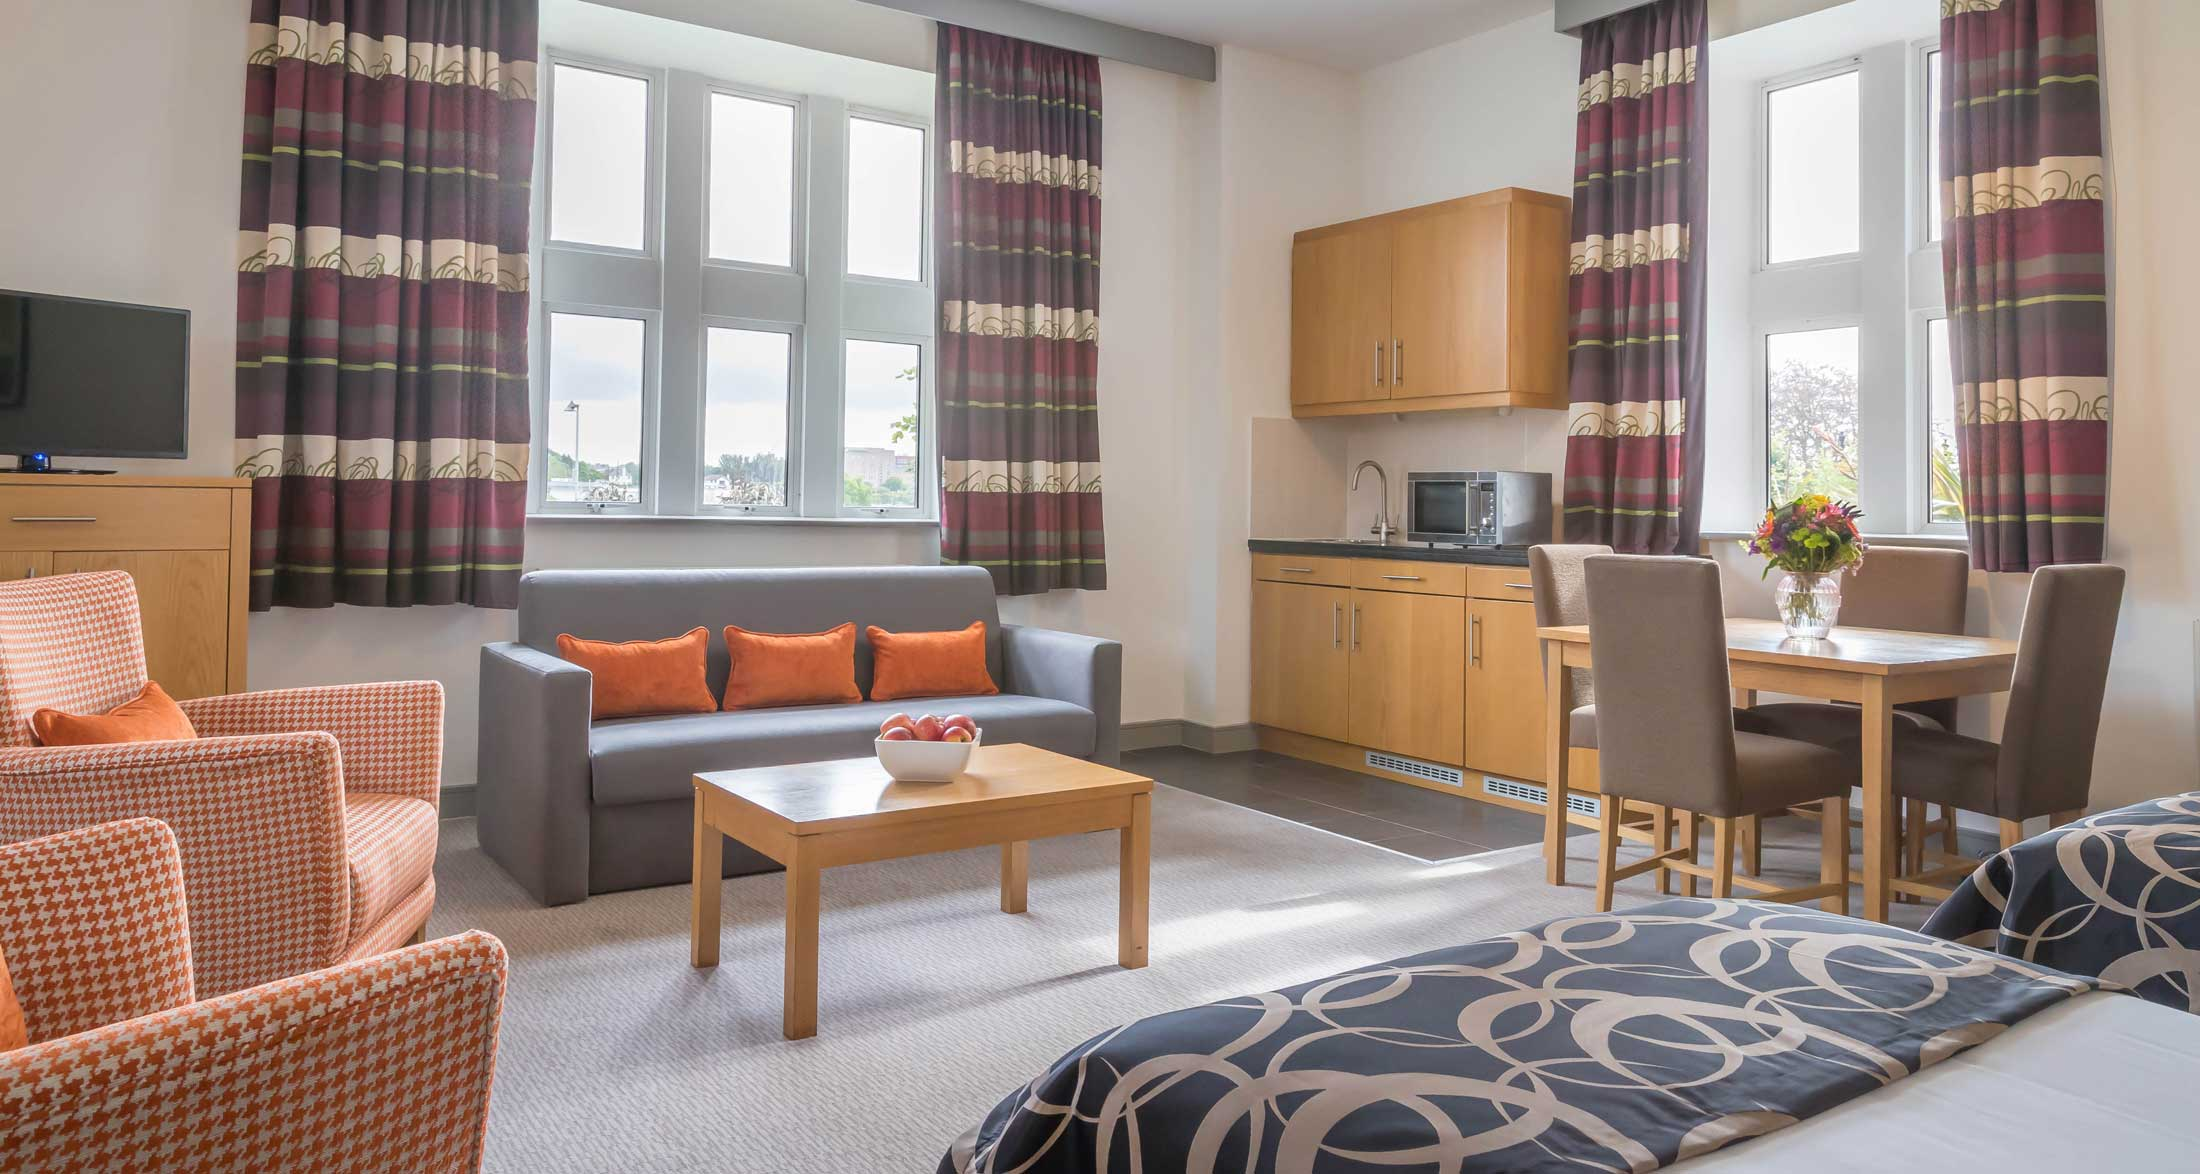 Clayton Hotel Sligo Family Suite Living Room And